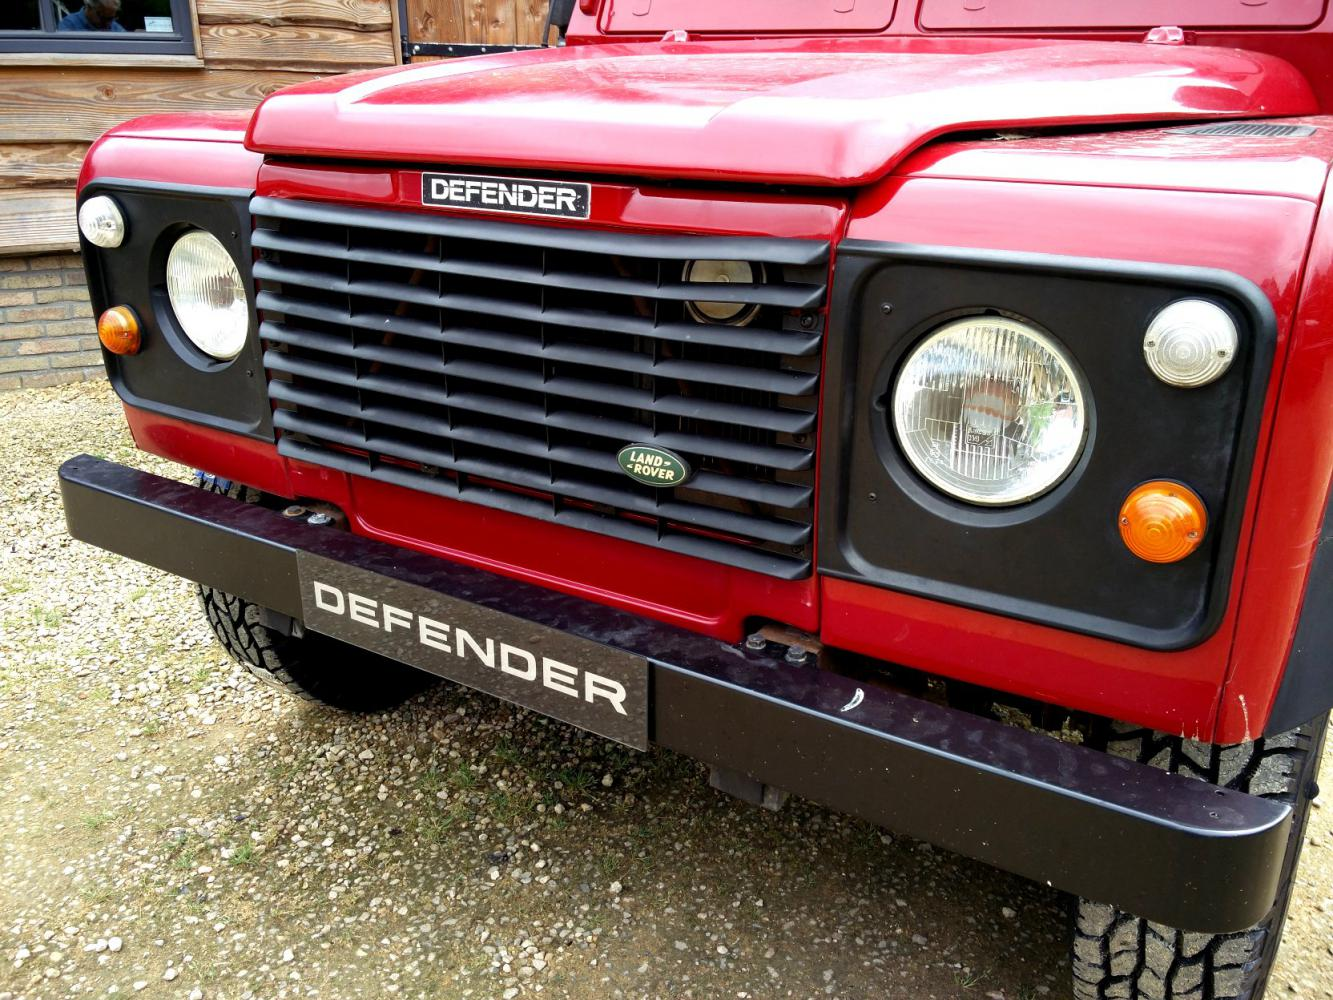 Click image for larger version  Name:1992 LR LHD Defender 90 Red 200 Tdi grill close.jpg Views:222 Size:244.2 KB ID:263658